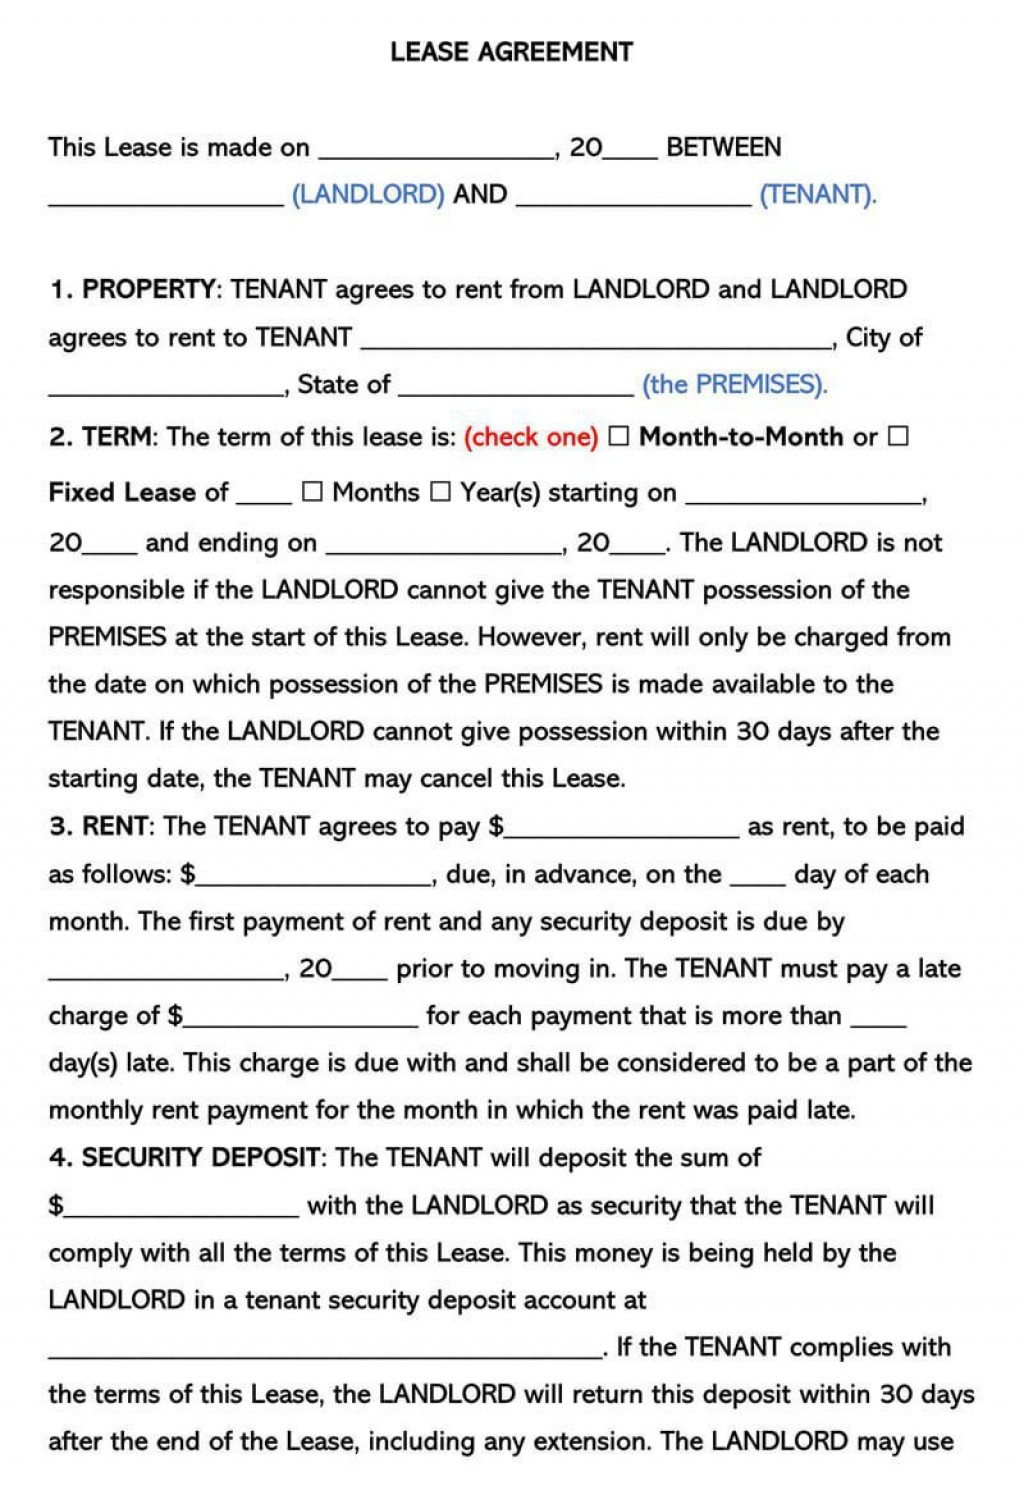 003 Stunning Apartment Lease Agreement Form Texa Example Large